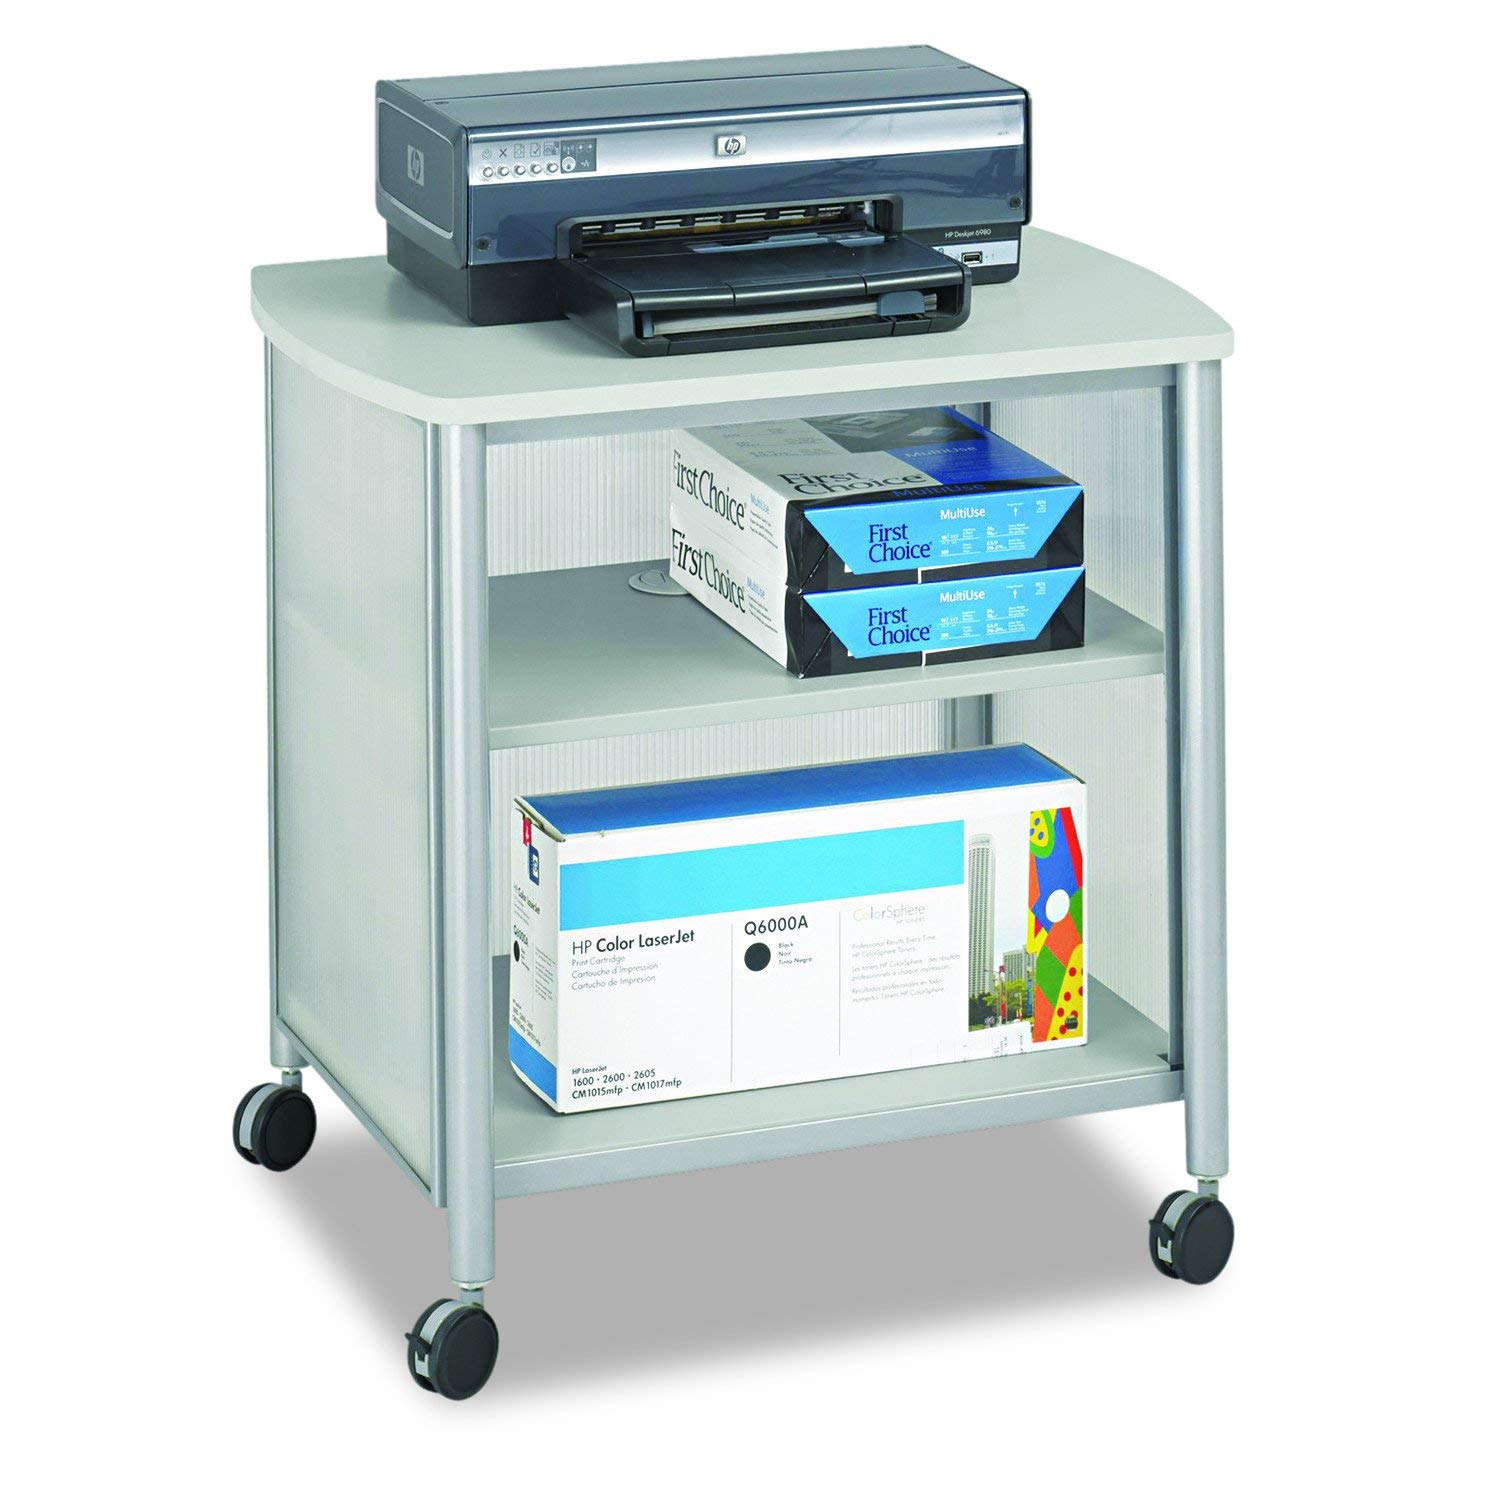 Safco Products Impromptu Mobile Print Stand 1857GR, Gray, 200 lbs. Capacity, Contemporary Design, Swivel Wheels by Safco Products